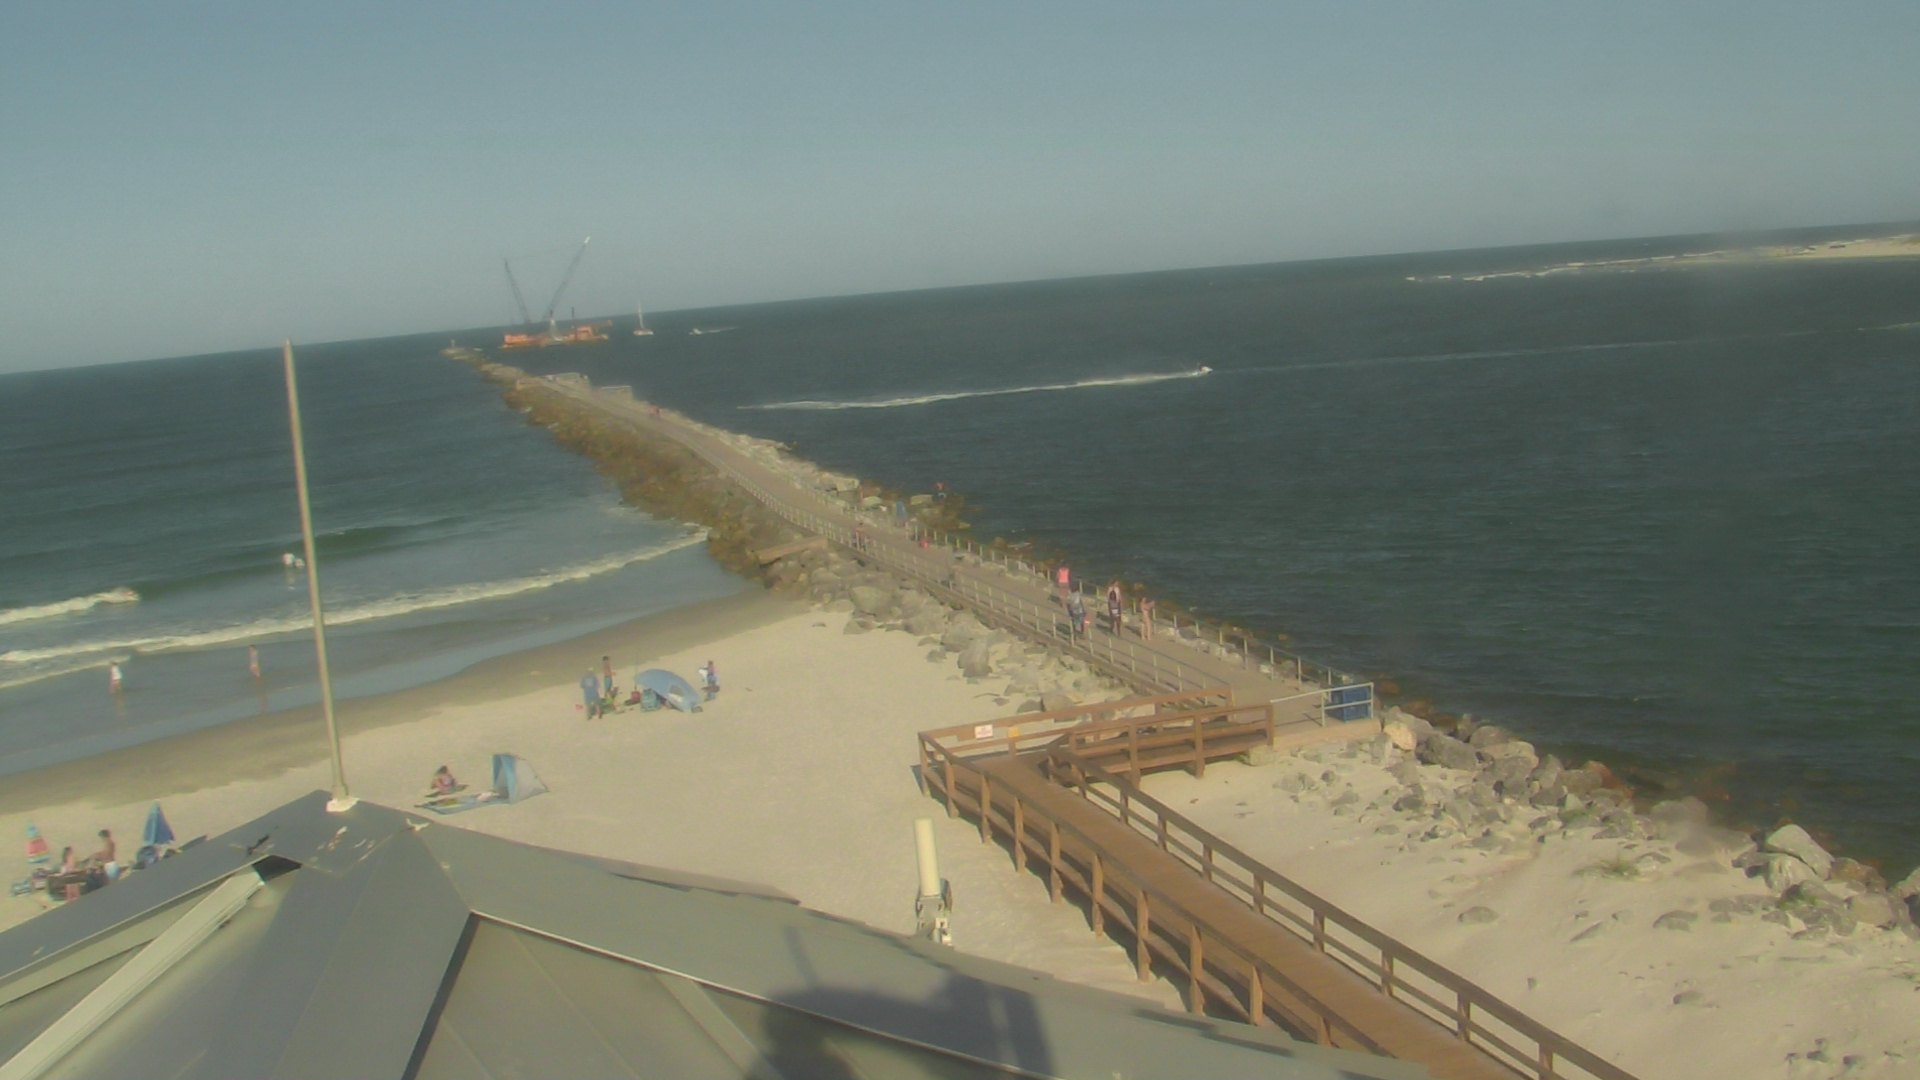 Live Camera from Volusia County - Ponce Control Tower, Ponce Inlet, FL 32127